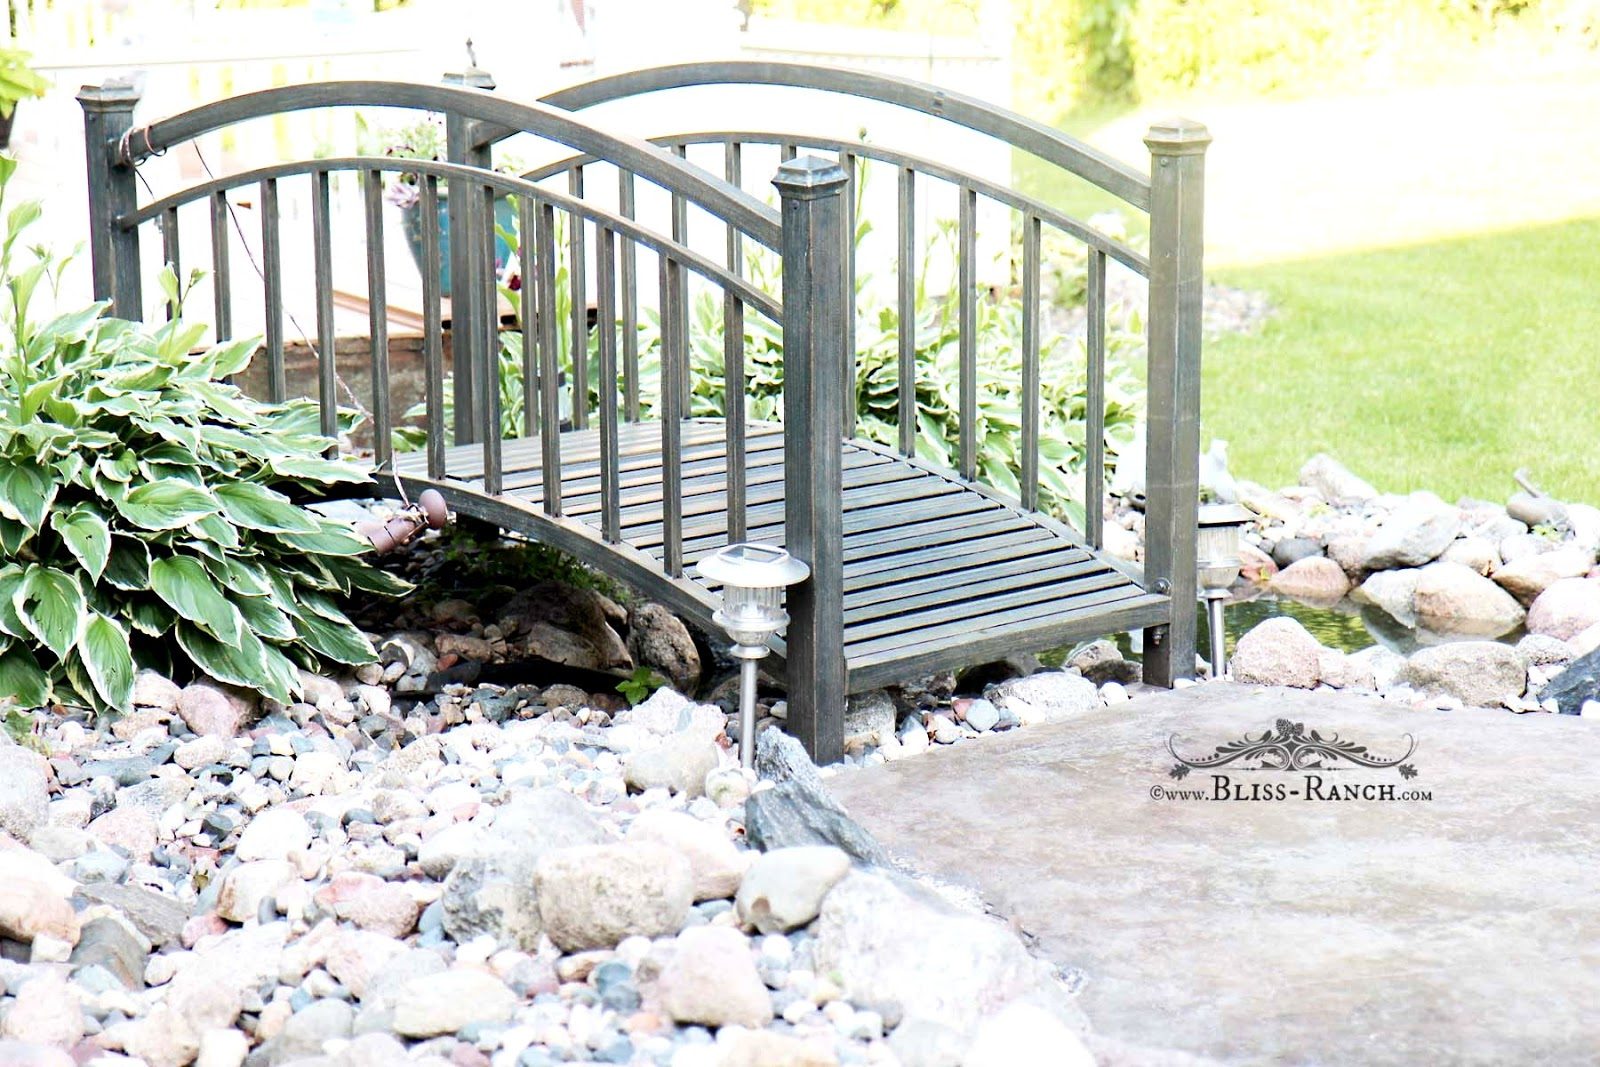 Bliss Ranch Powder Coated Steel Pond Bridge From A